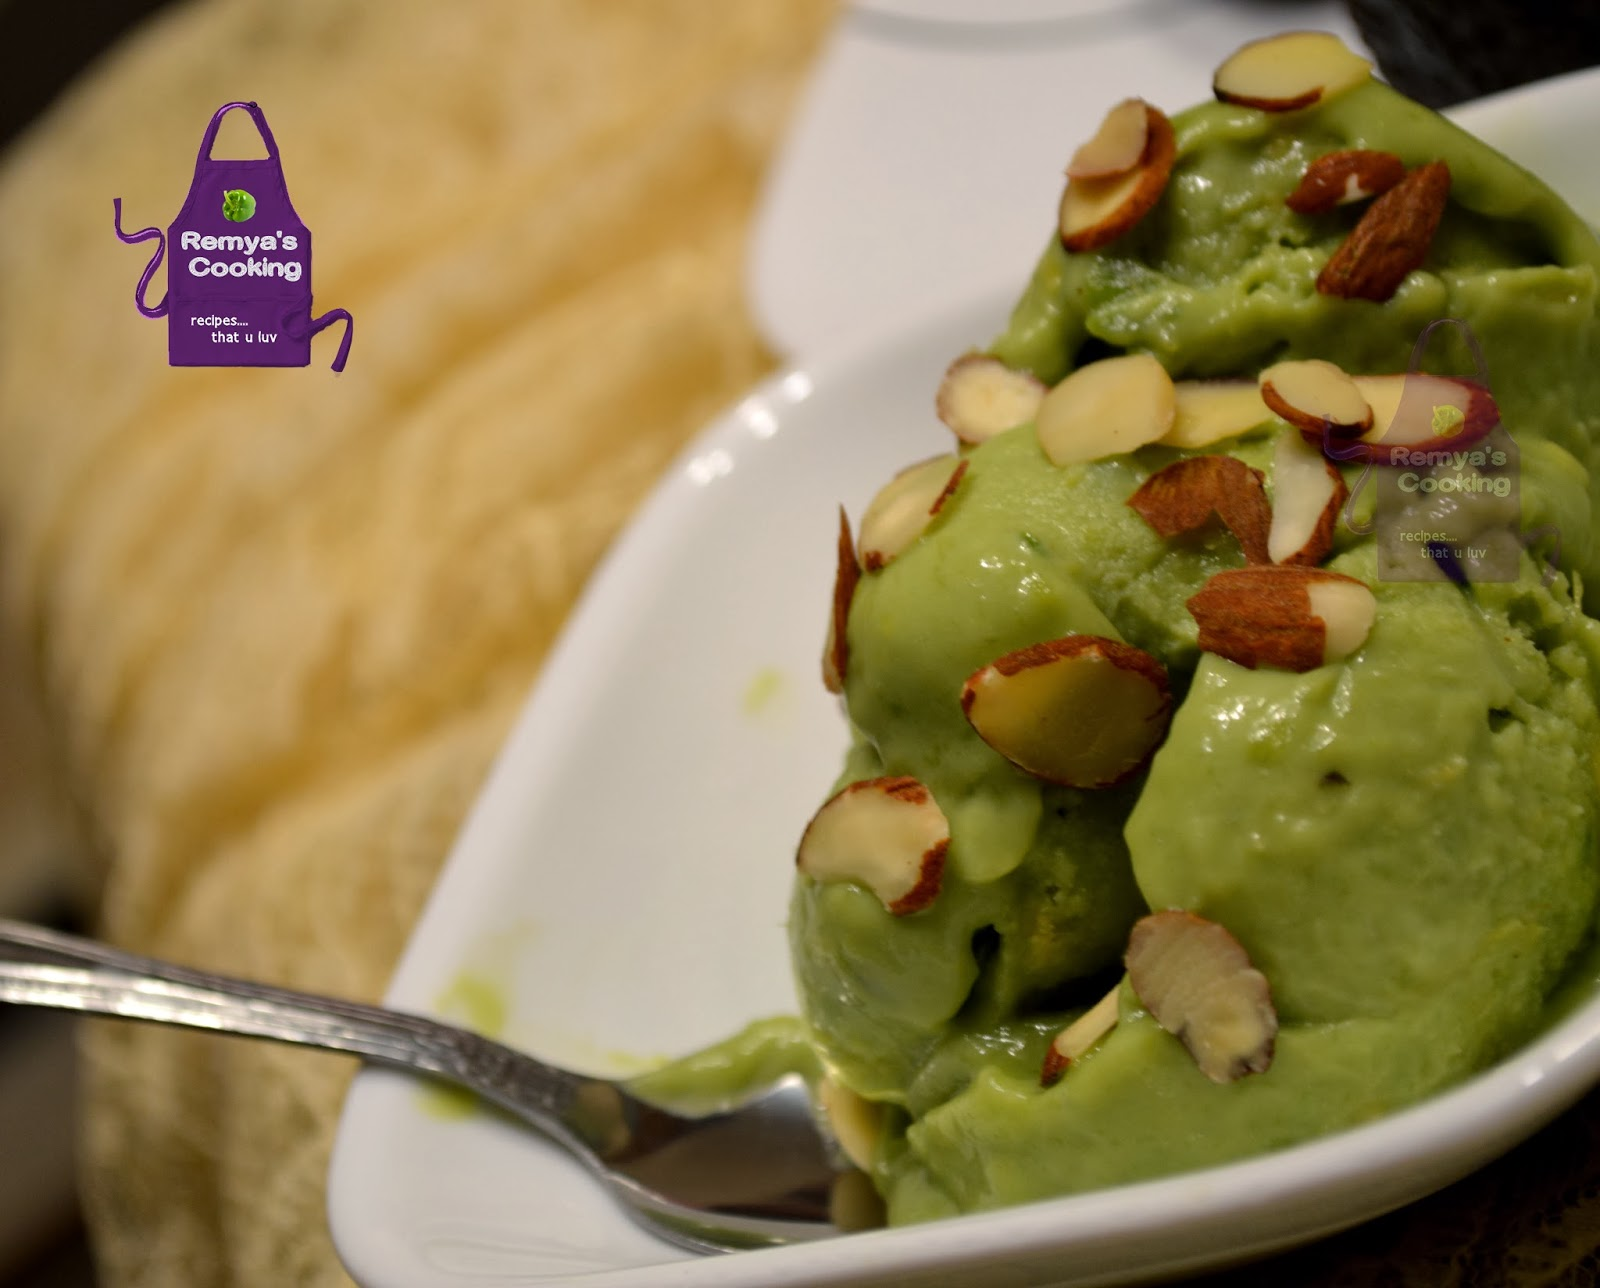 Avacado Ice Cream